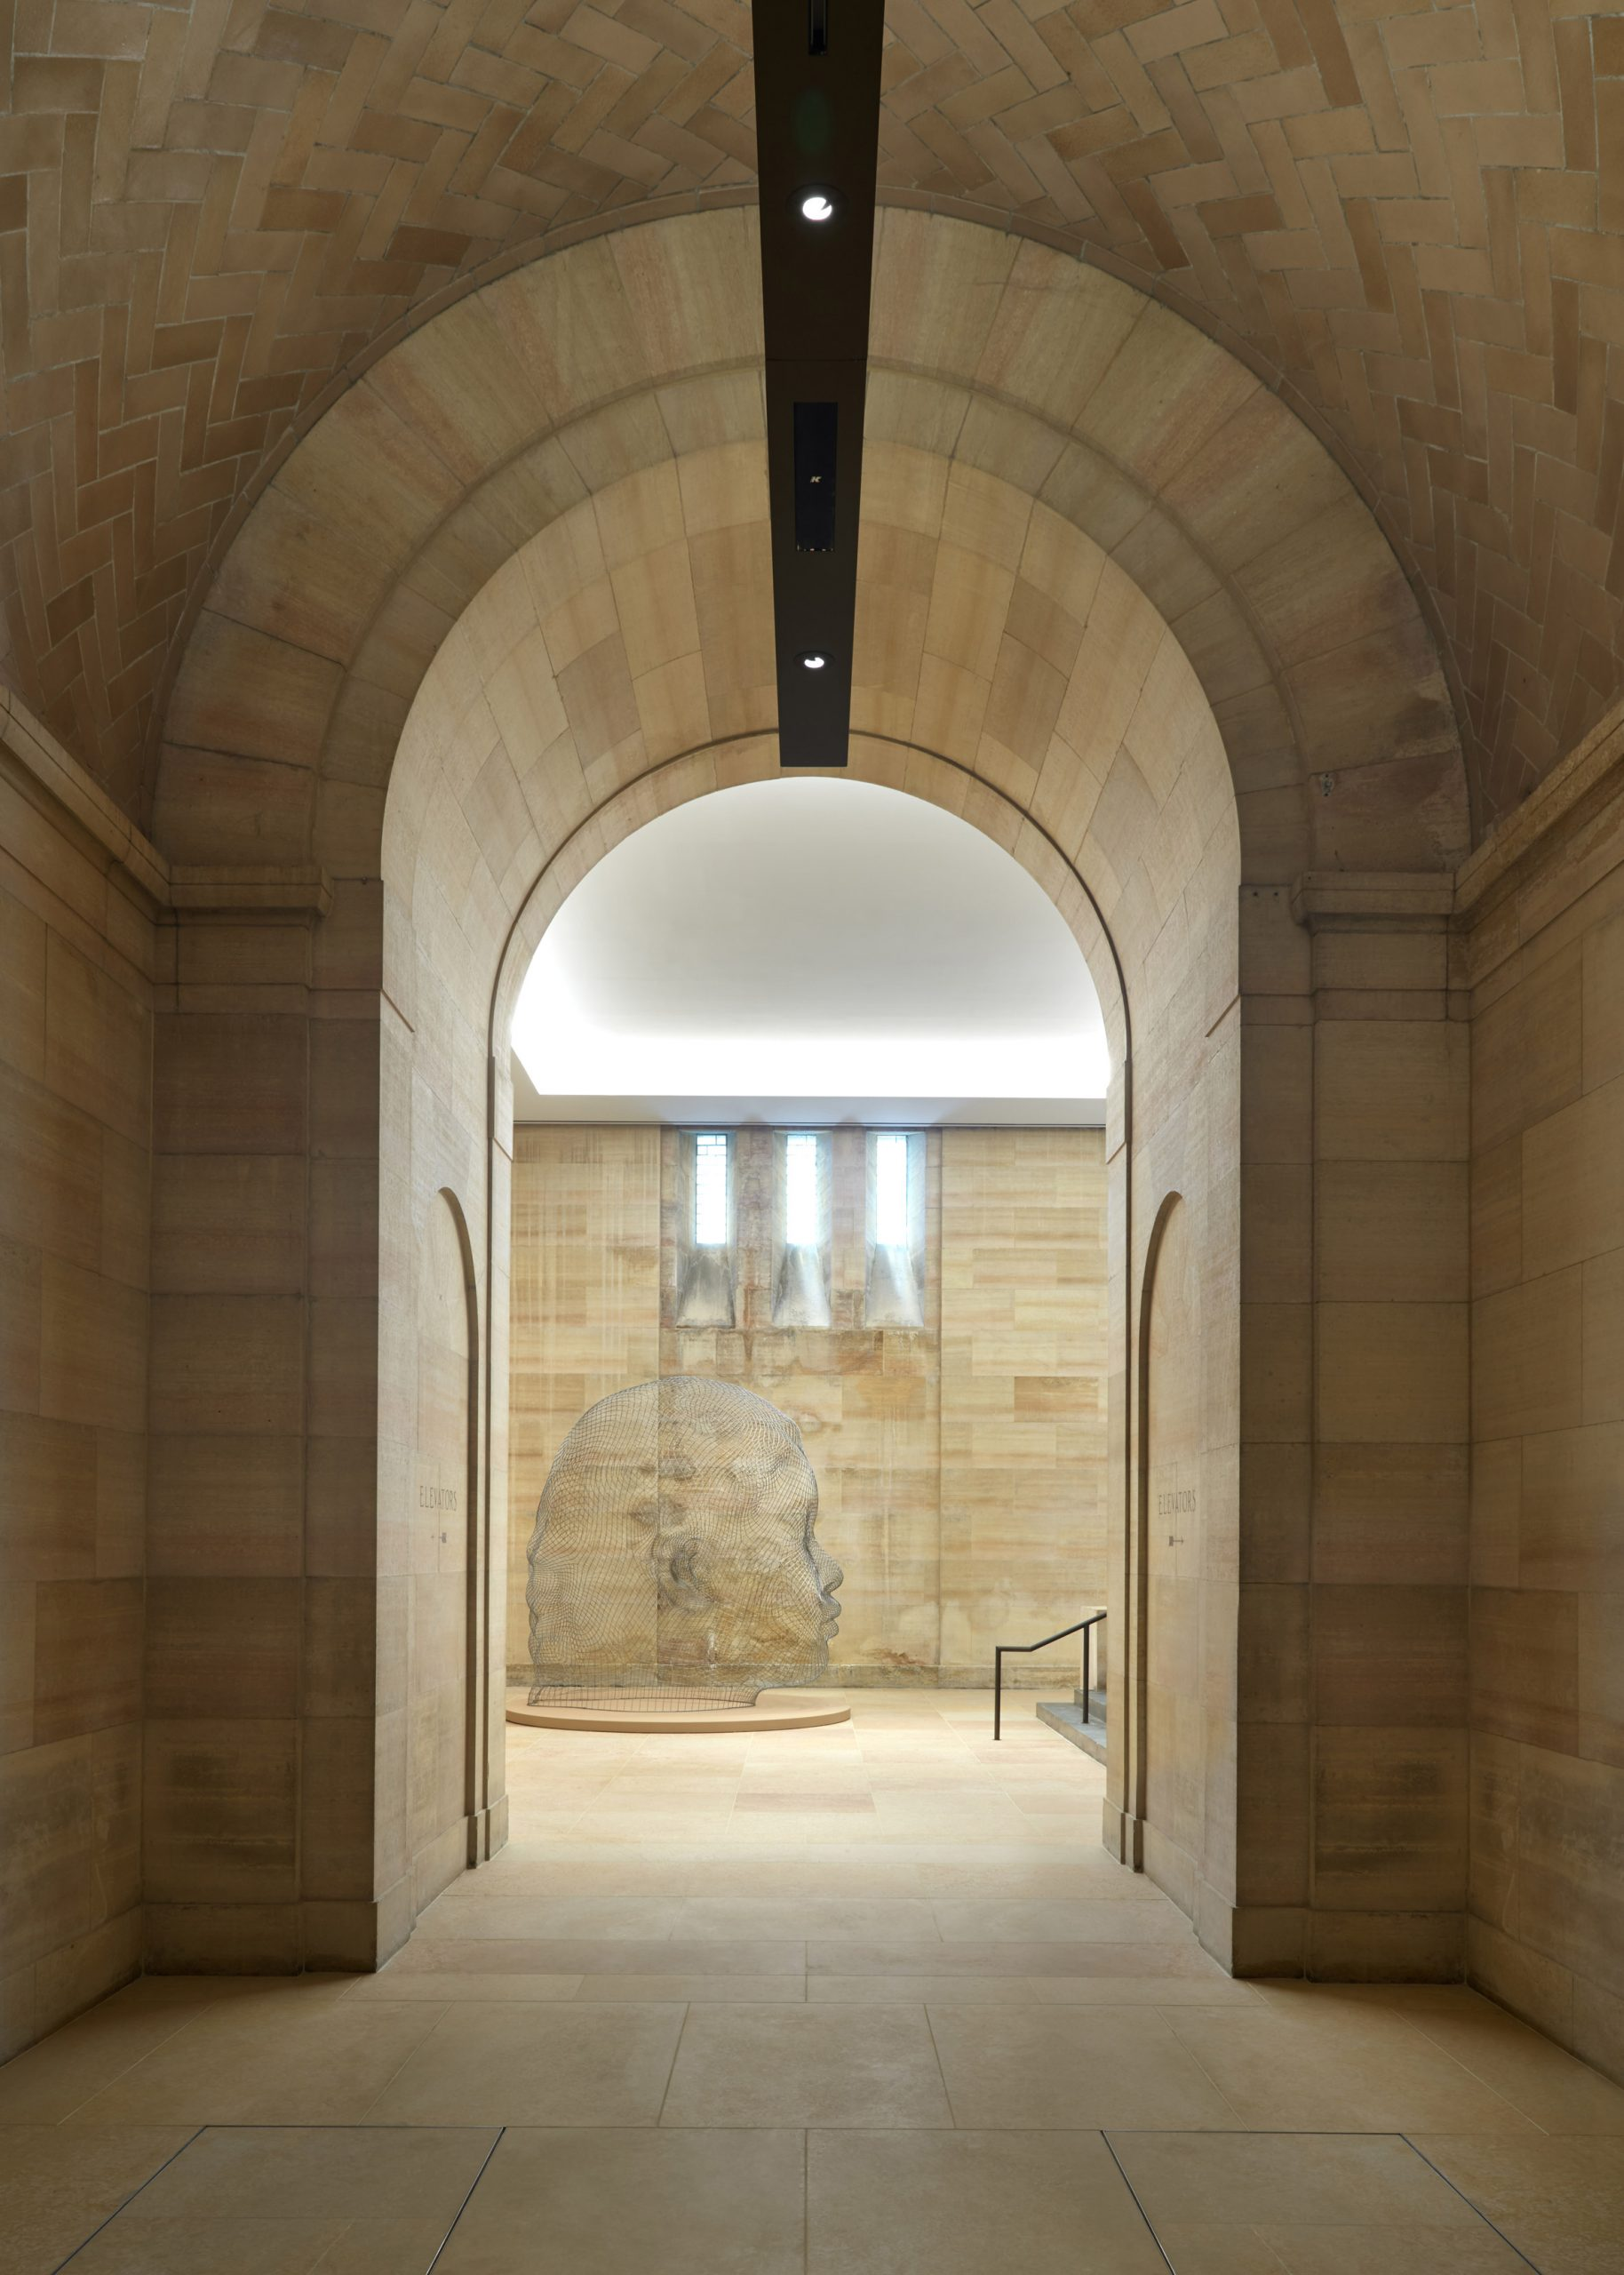 The South Hall of the Philadelphia Museum of Art